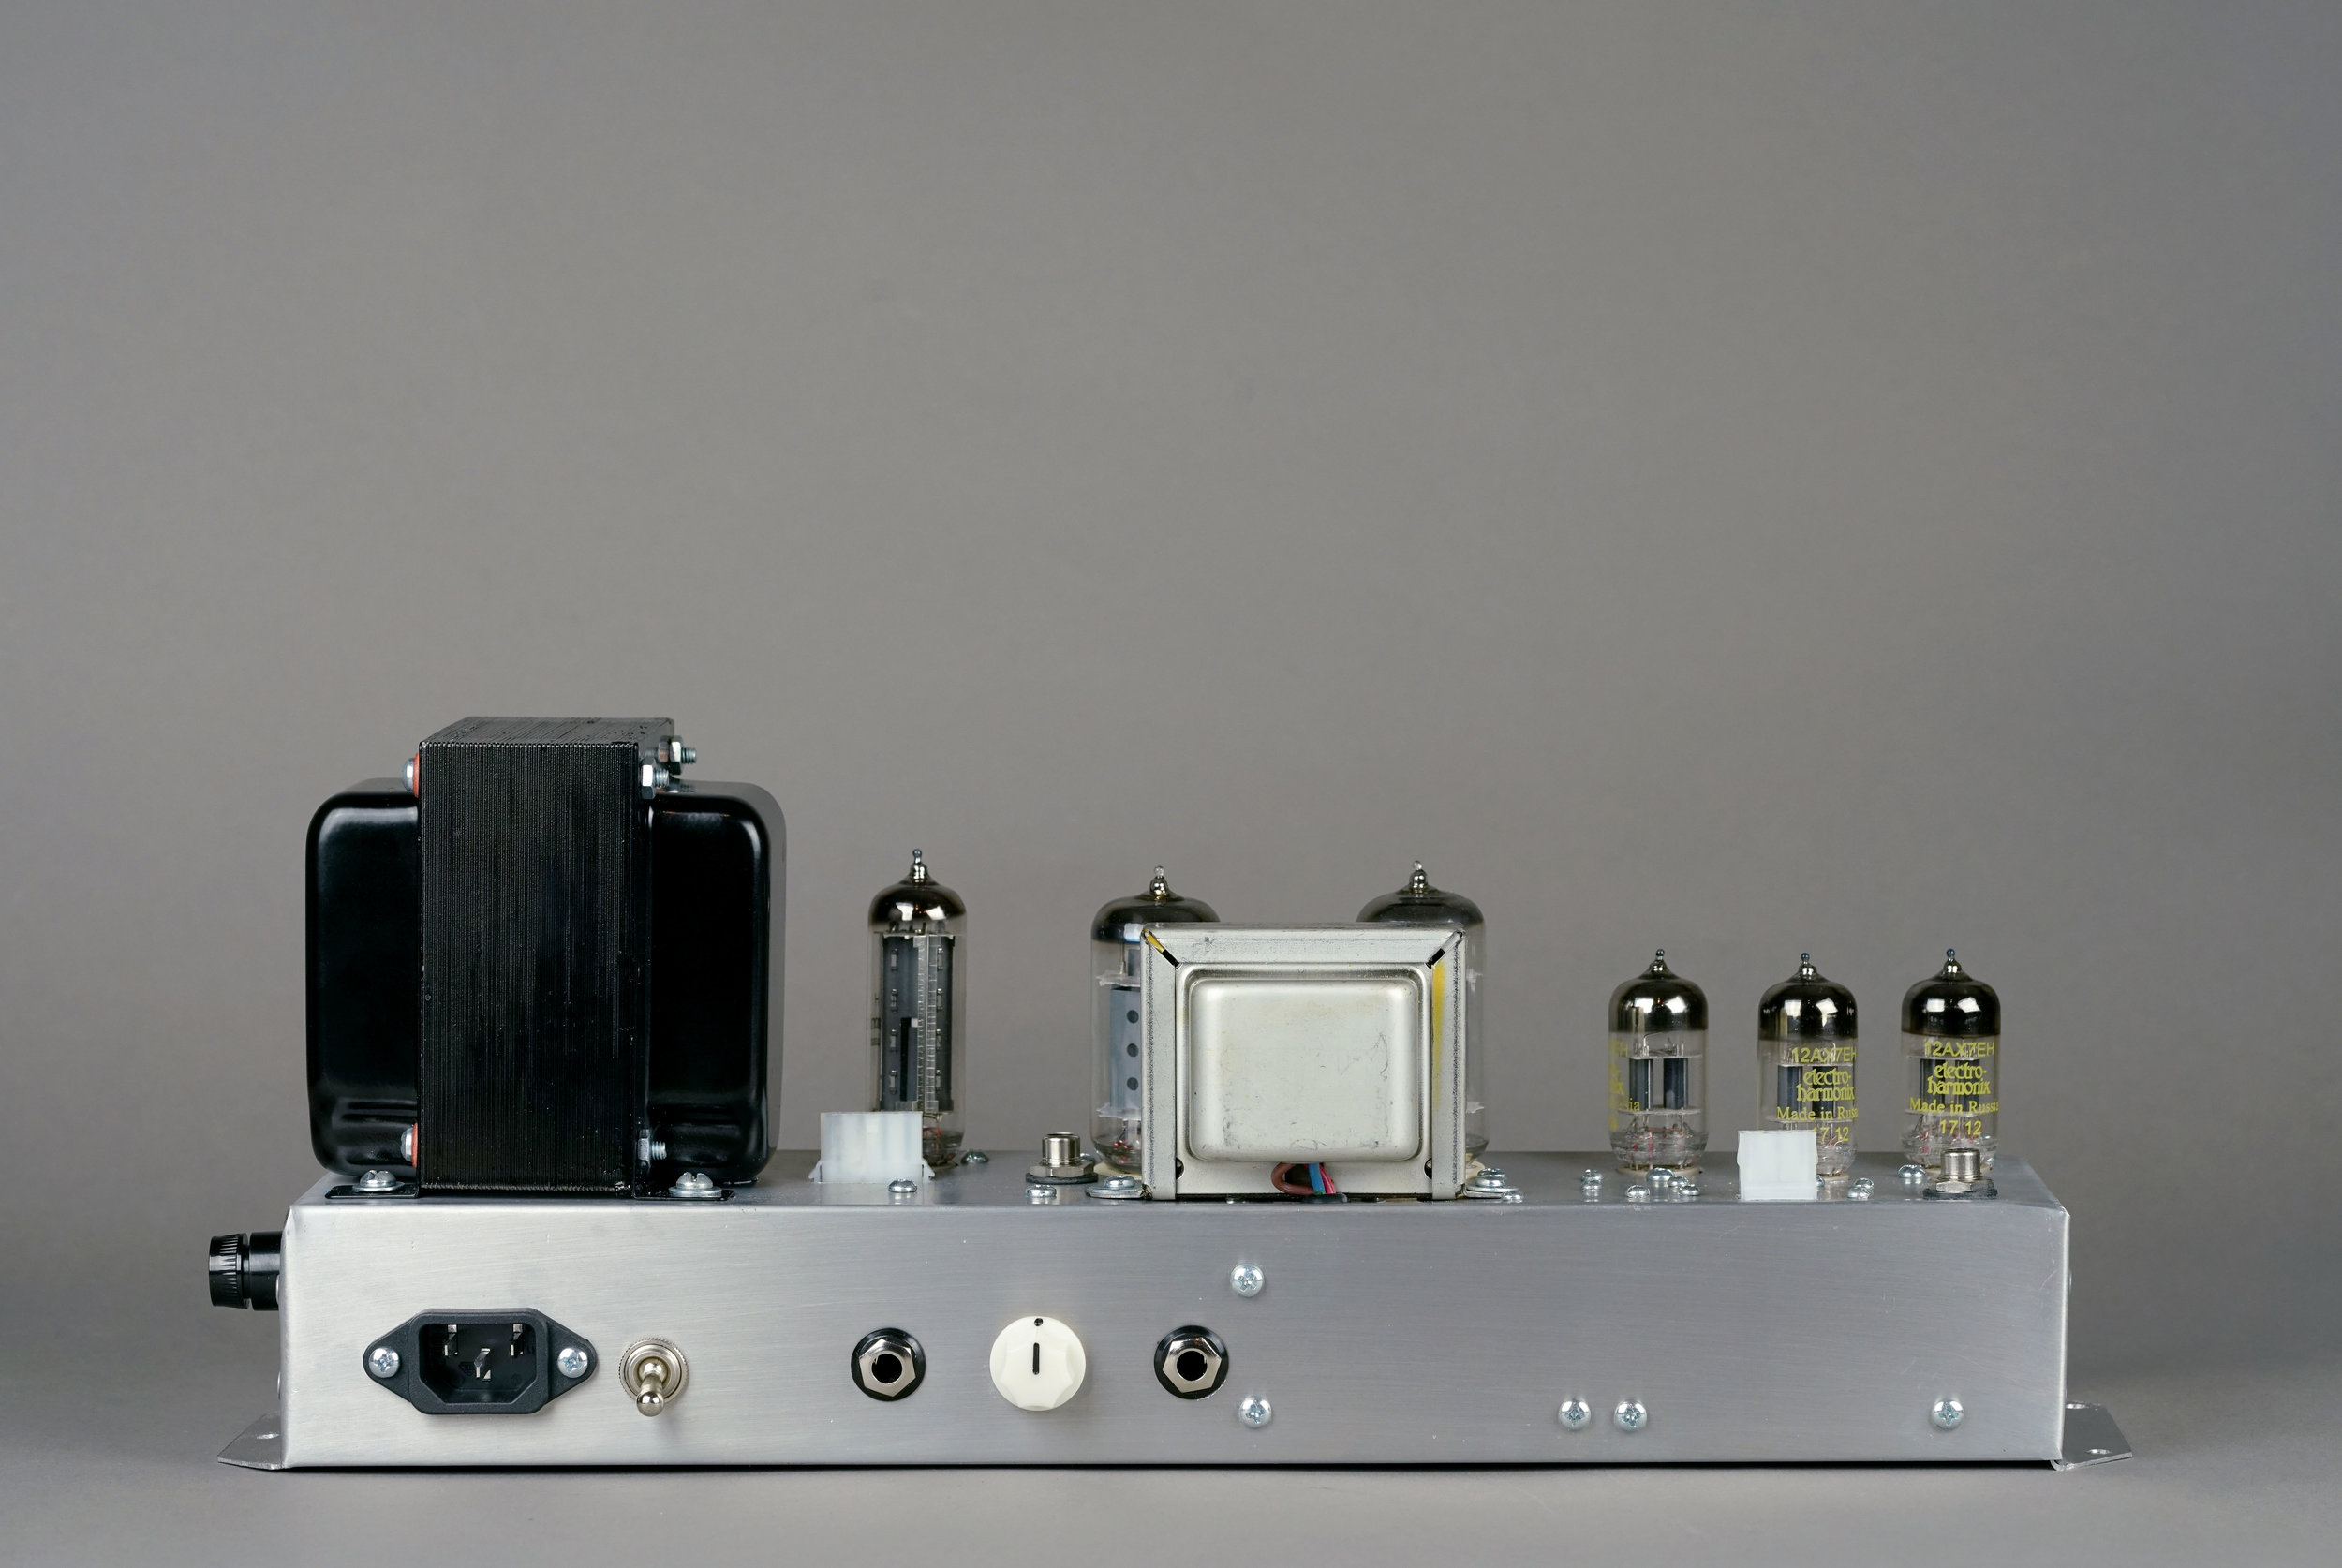 Our 145 replacement amp optionally comes with an fx loop.